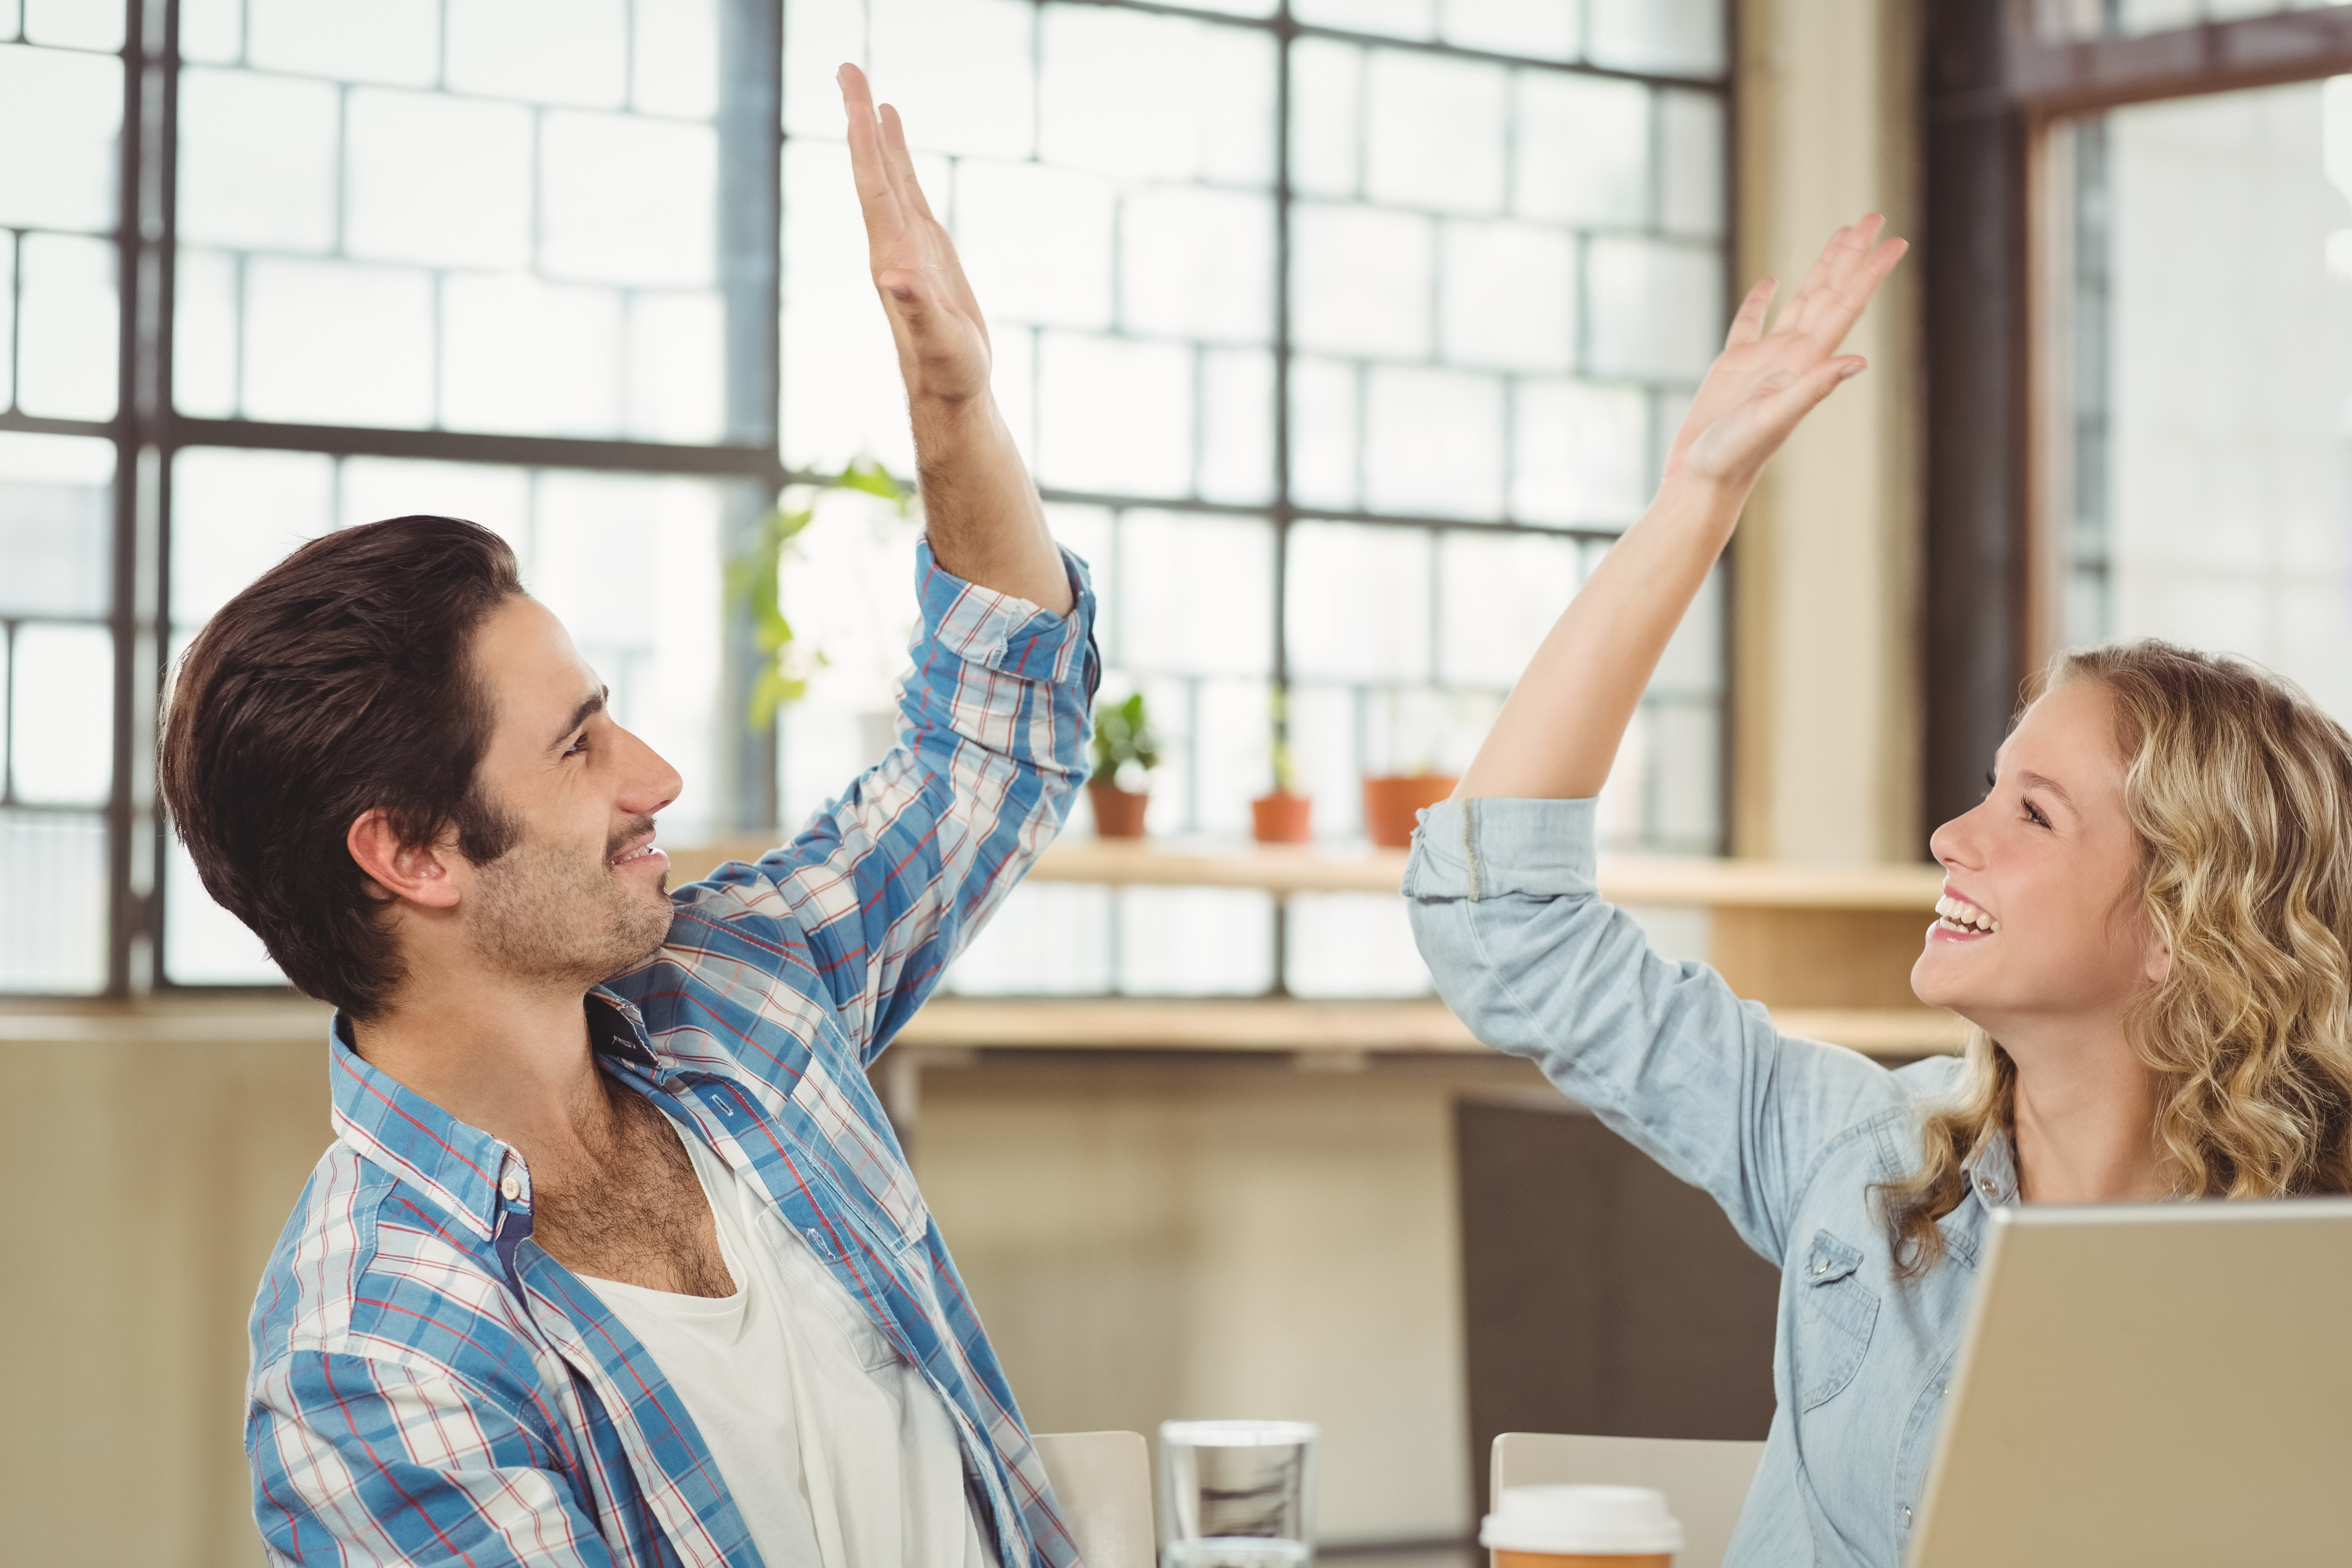 Colleagues giving high five